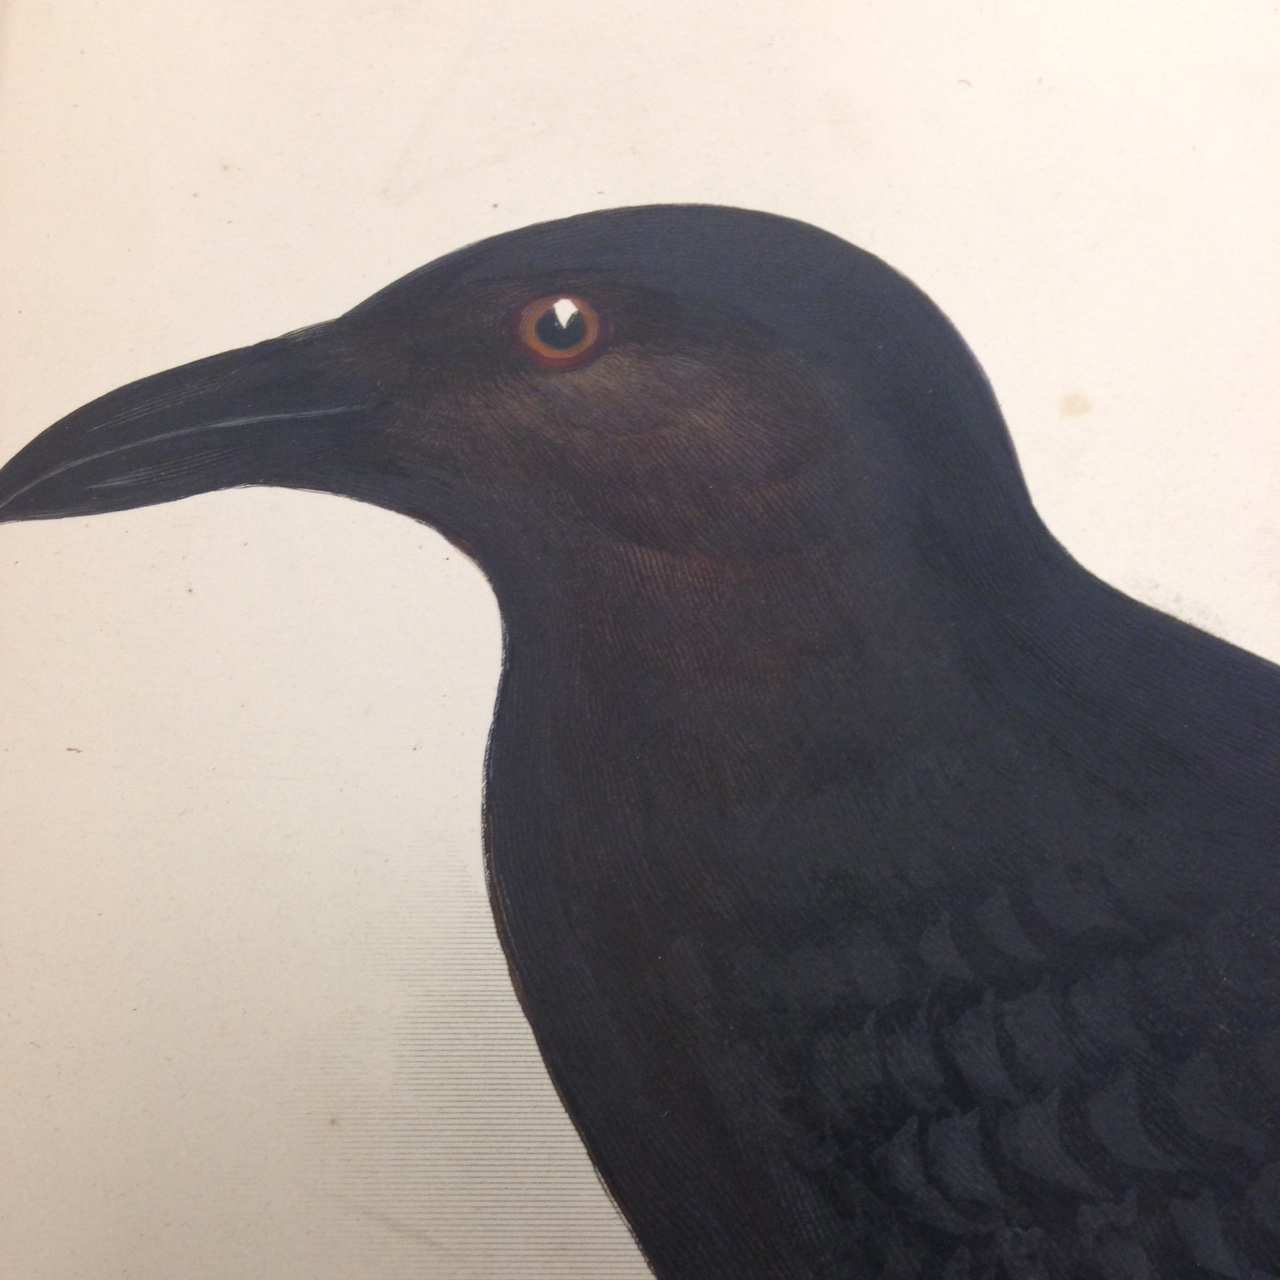 Ornithology, Plate 5: Corvus ruficollis (Brown-necked raven). – Close-up on that ever-watchful eye…No wonder Poe was wary!